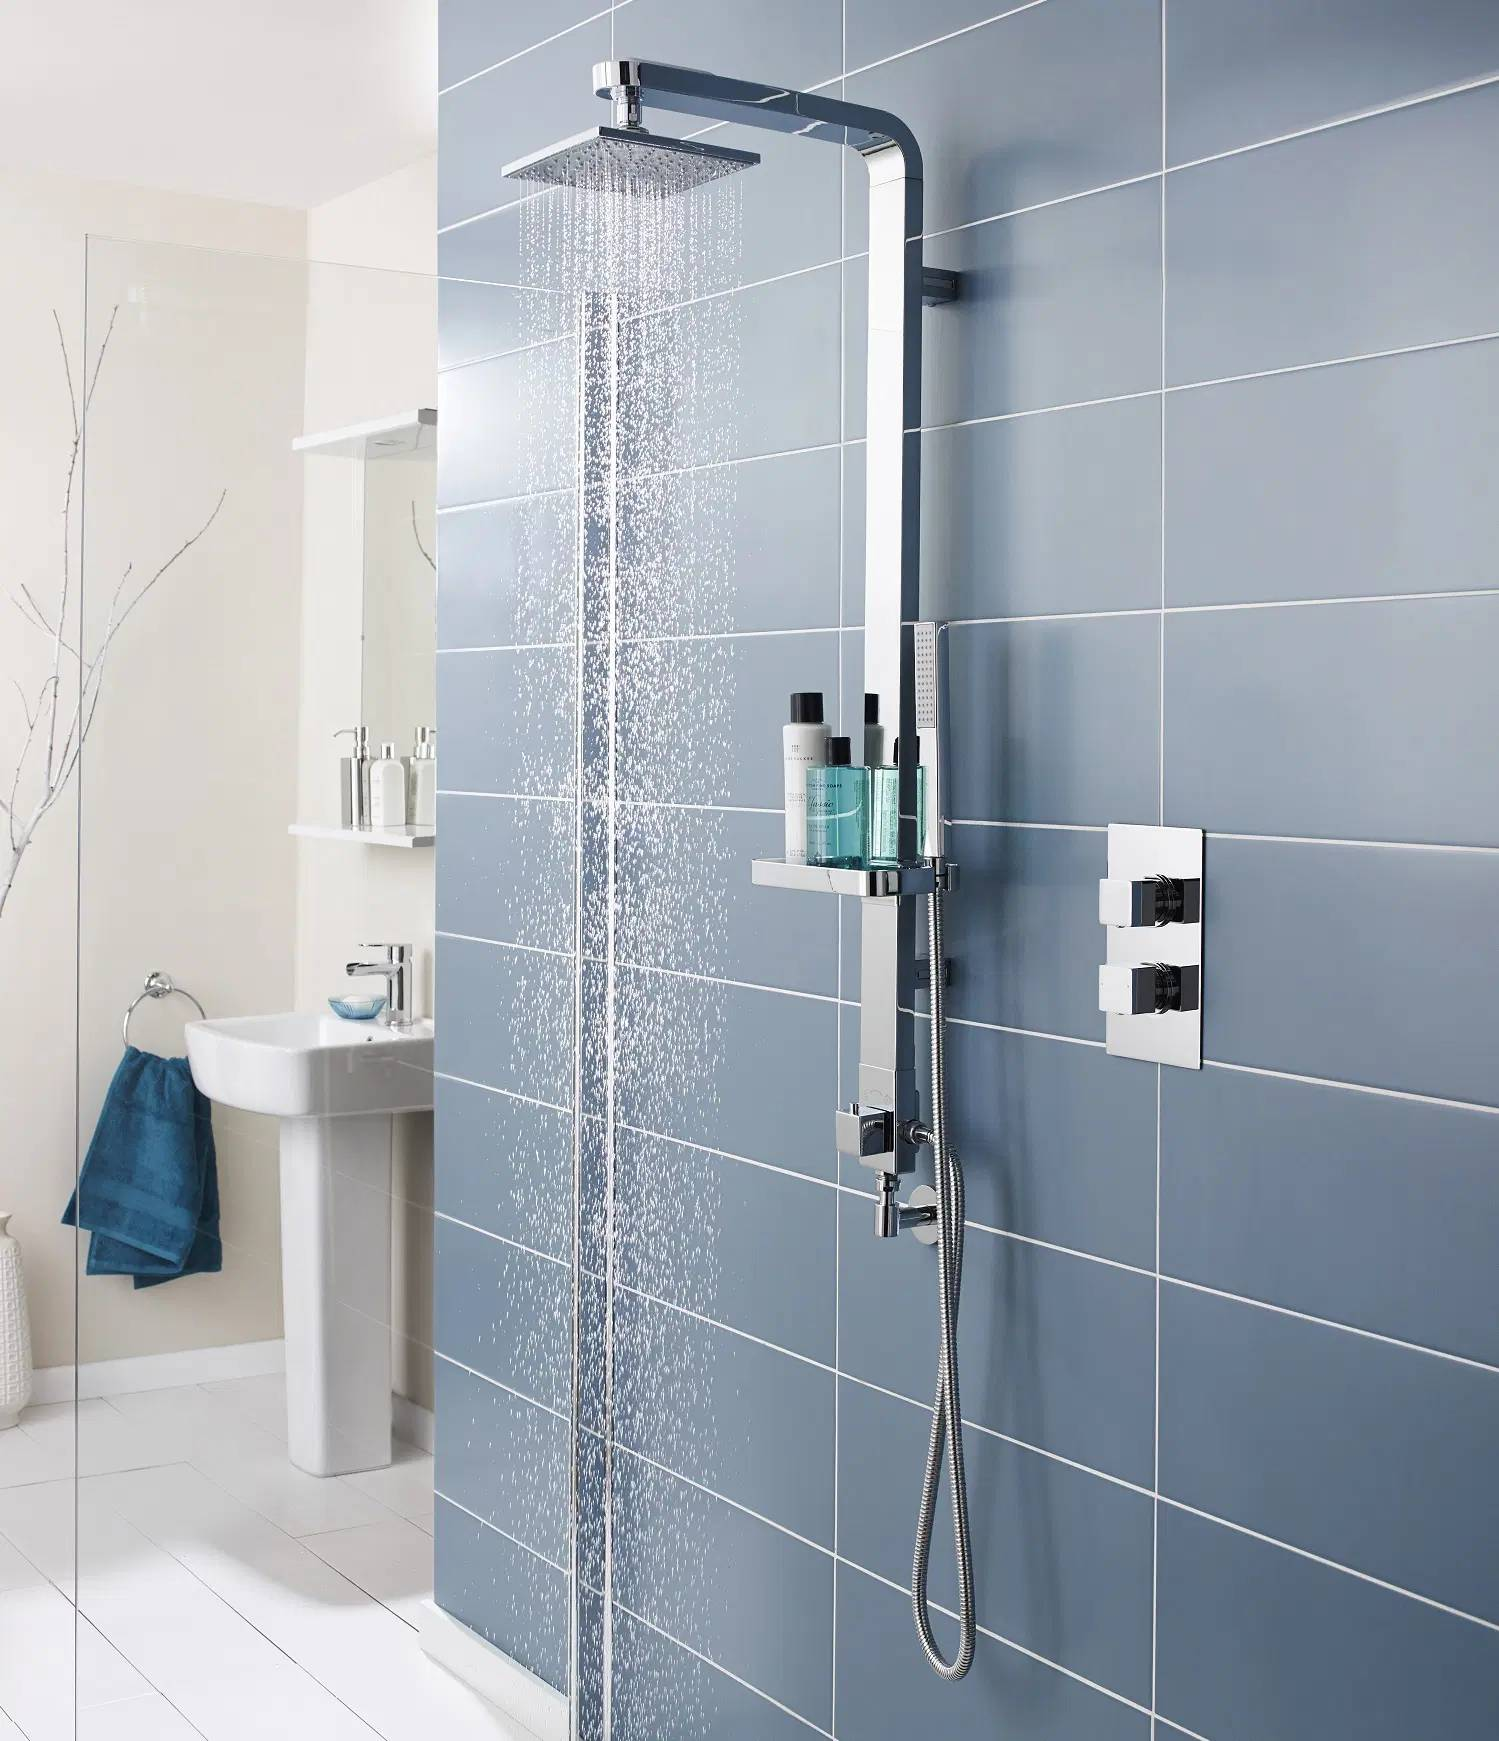 how to regrout a shower wall step by